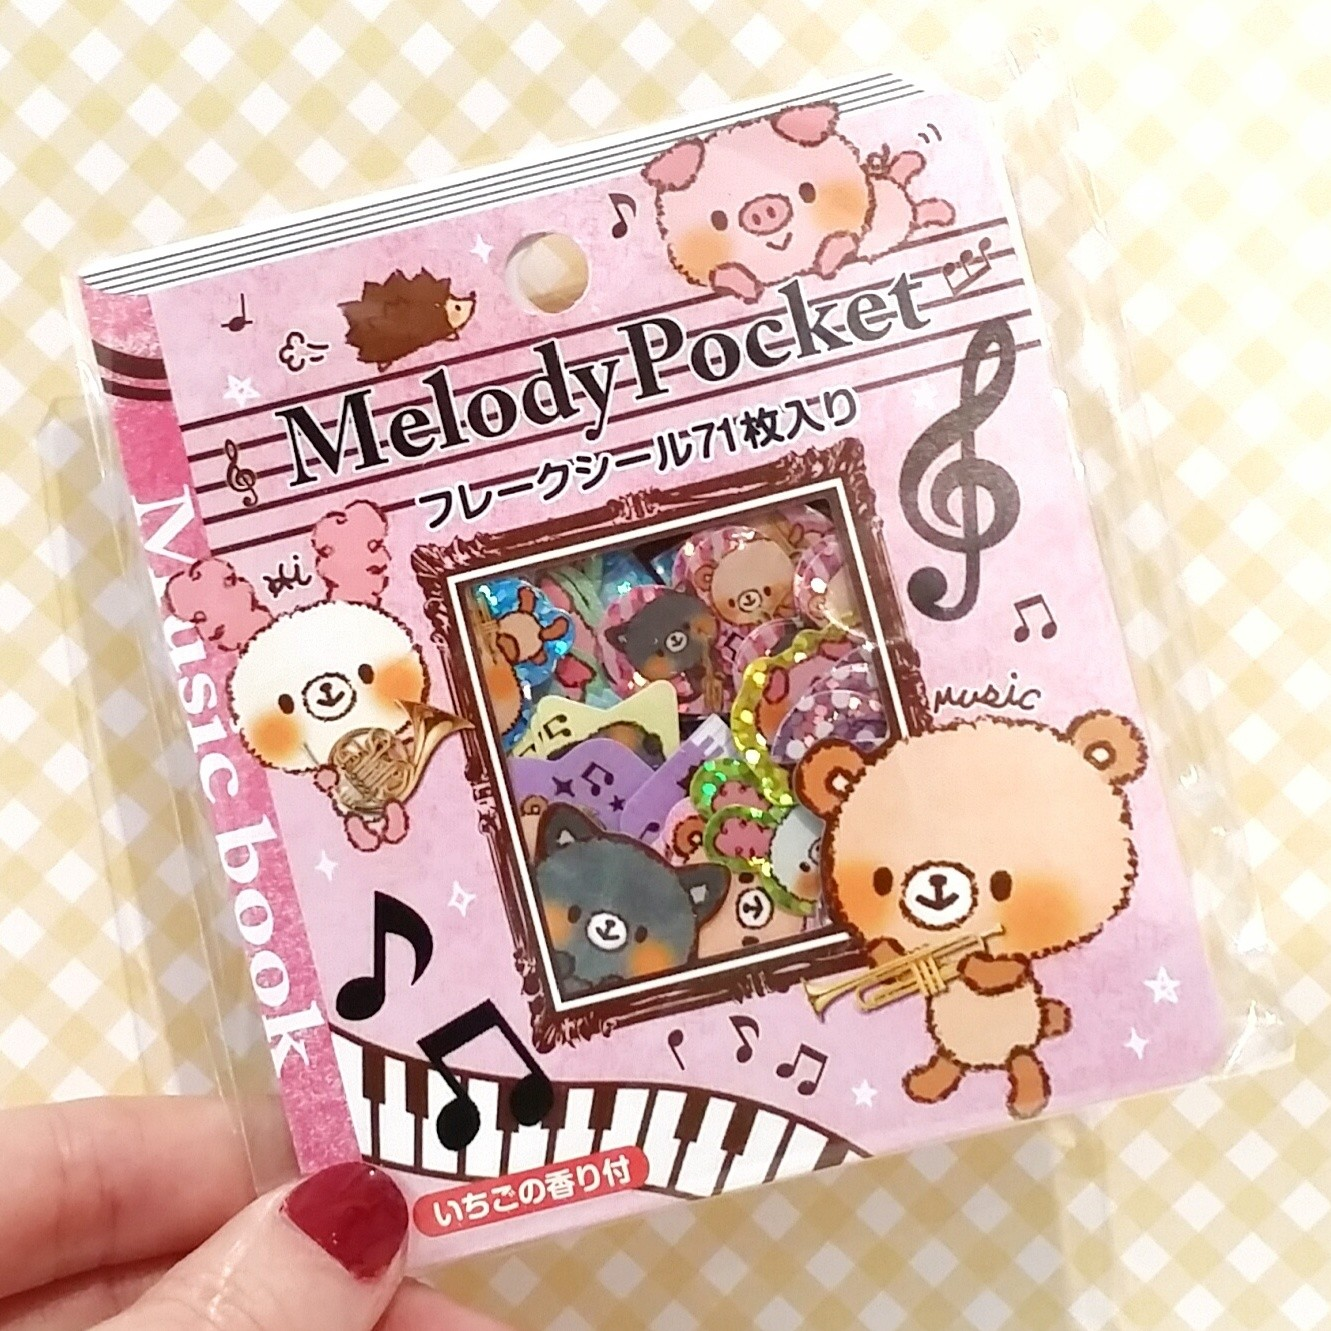 Lovly animal stickers. Melody Pocket